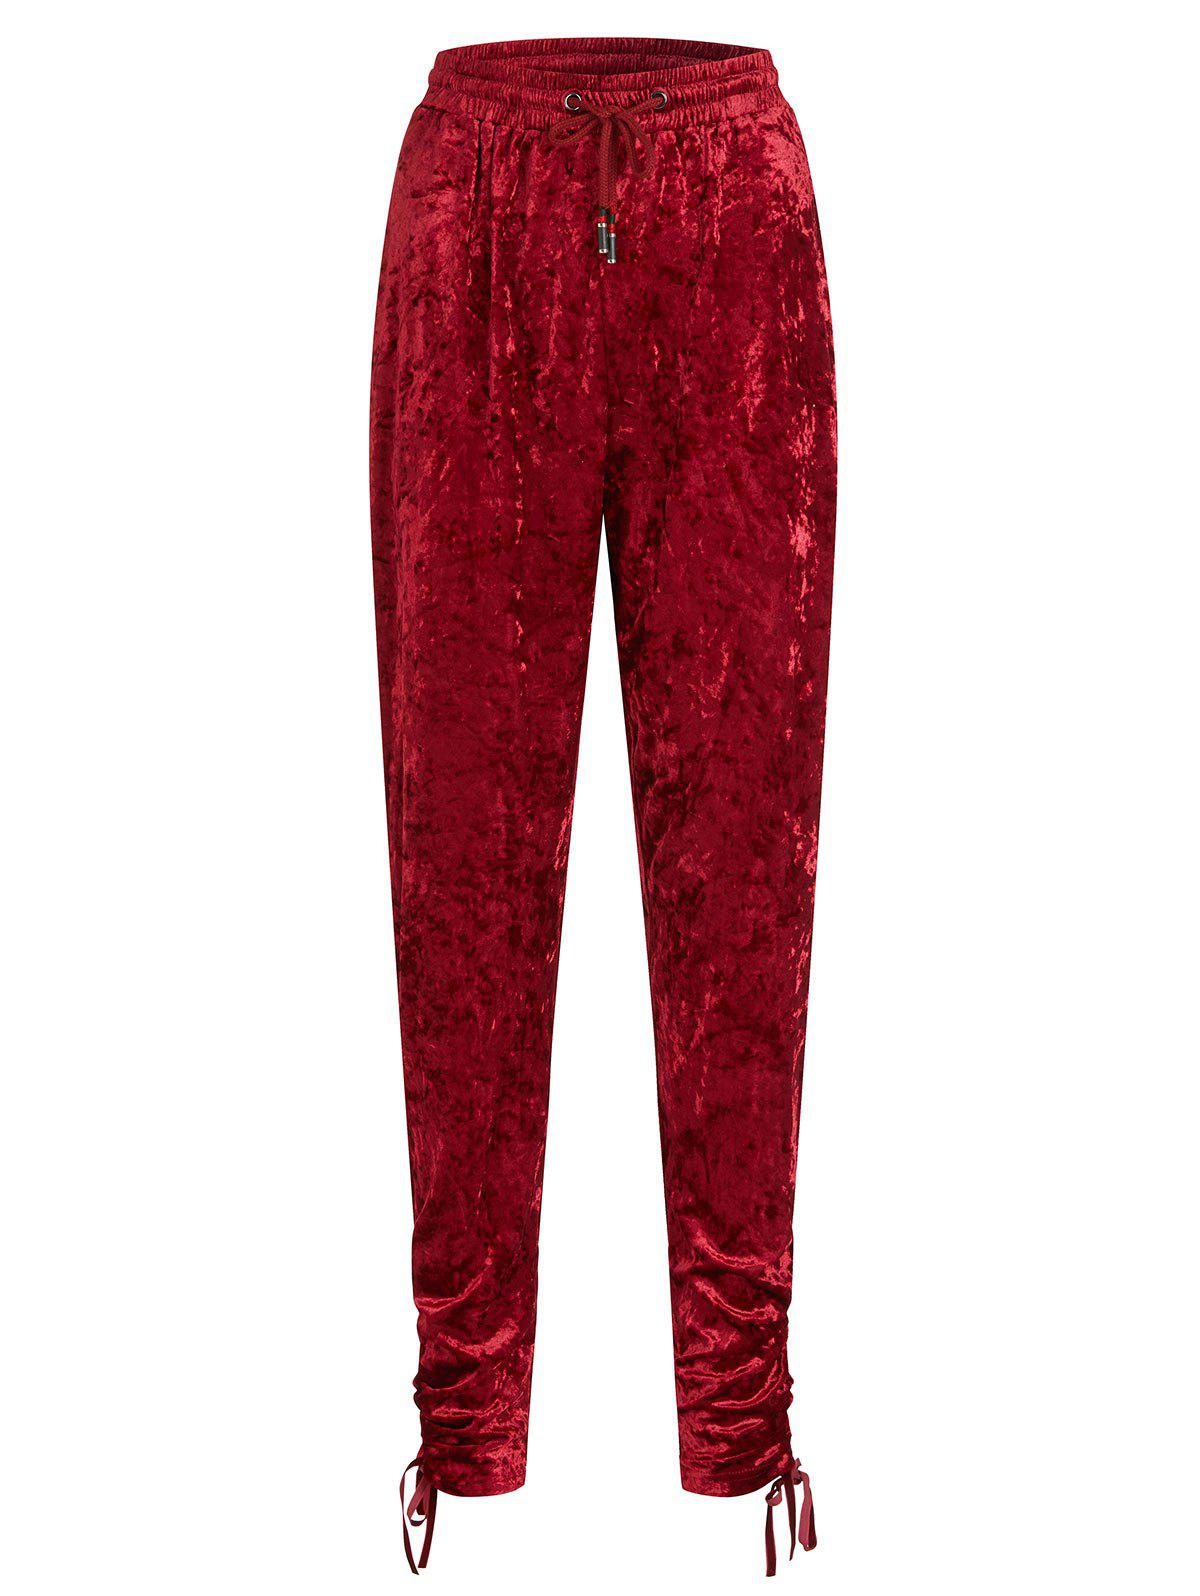 Crushed Velvet Plus Size Joggers Pants - RED 4X